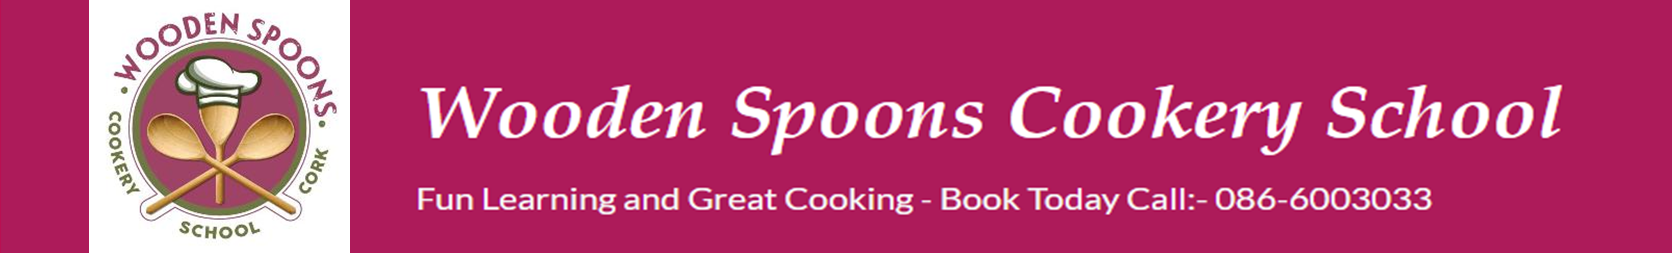 Wooden Spoons Cookery School Cork